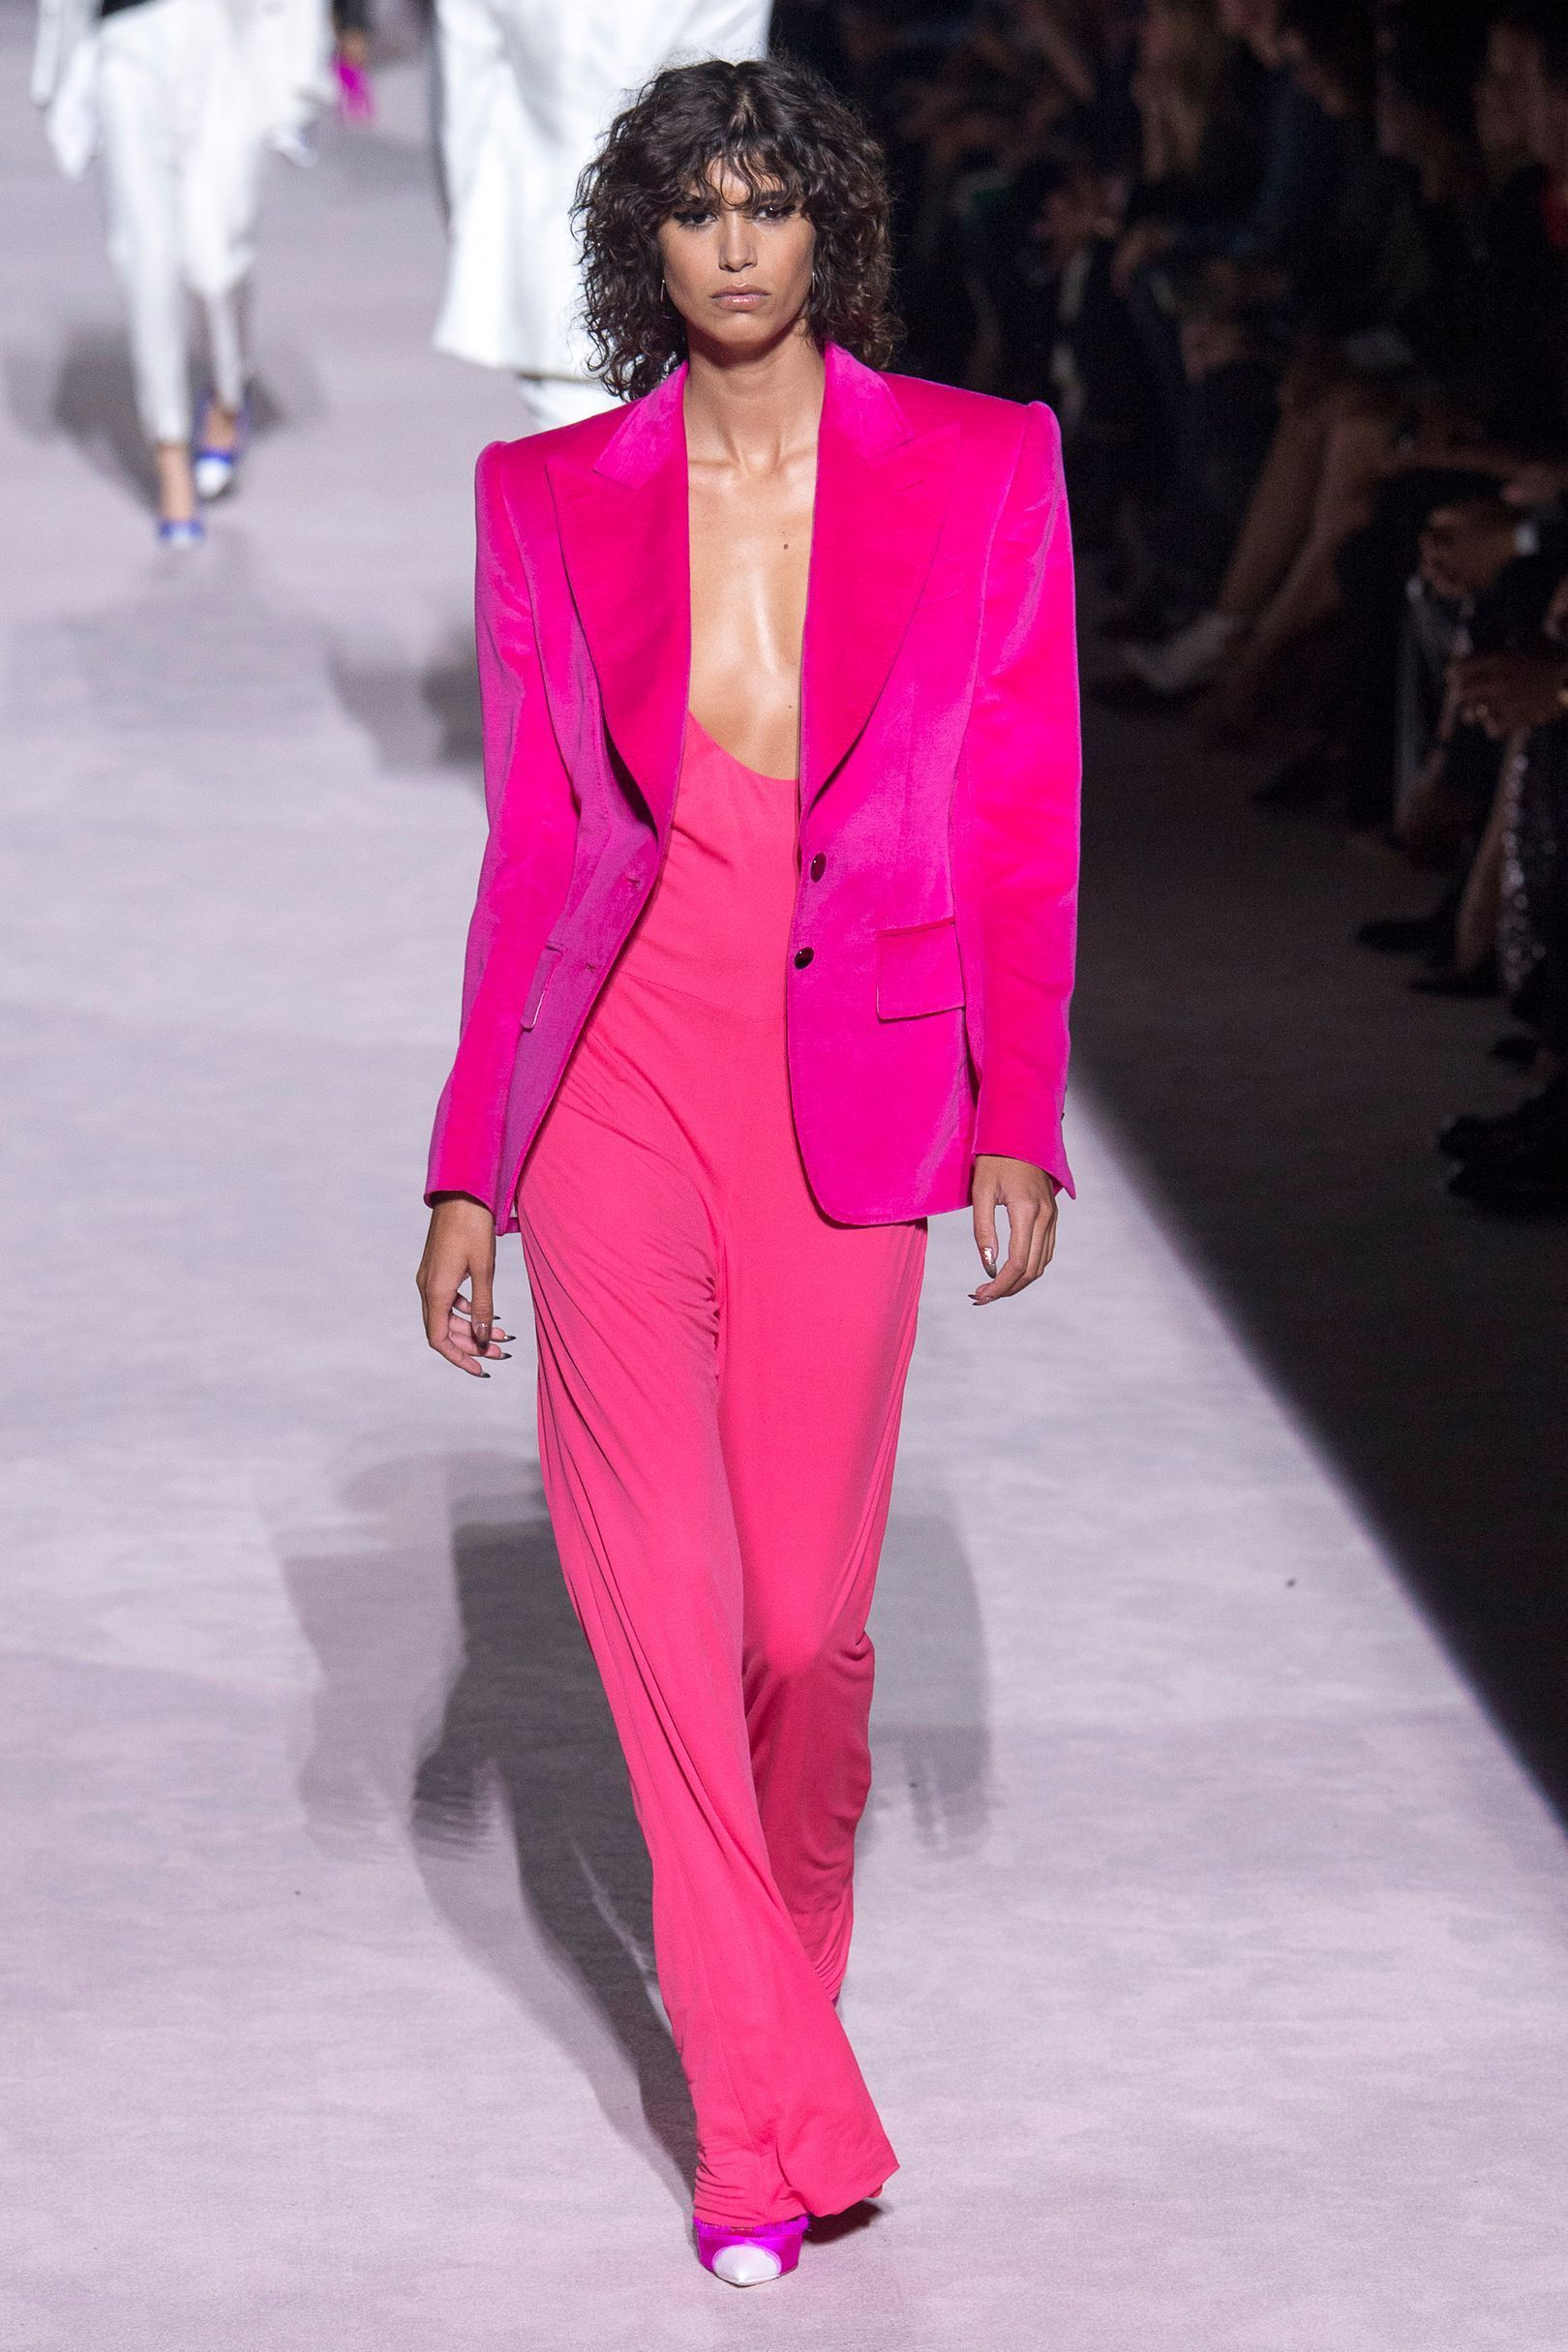 Fashion style Tom spring ford runway for woman